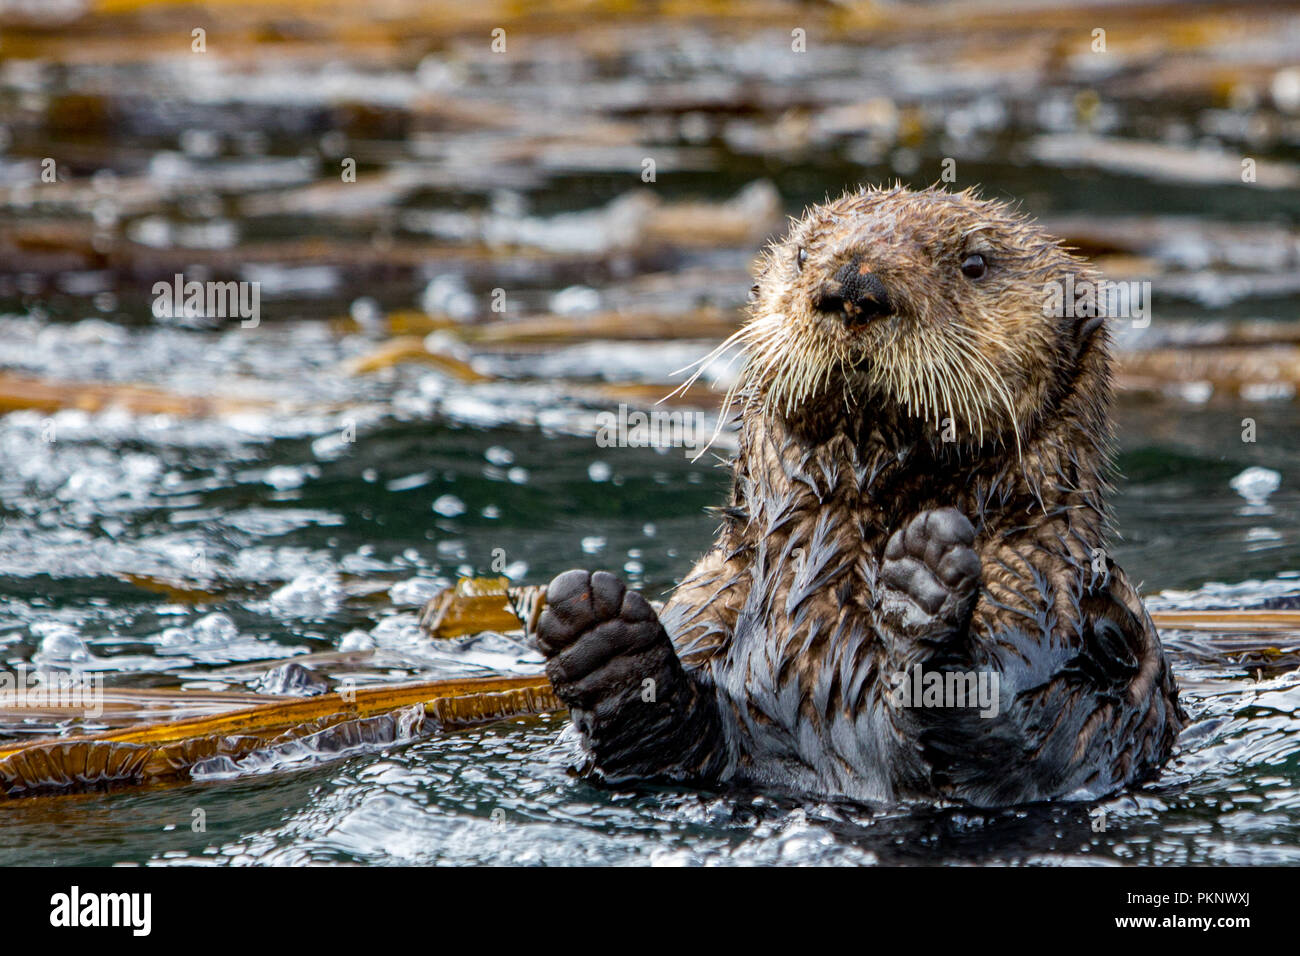 Sea otter, Enhydra lutris, a marine mammal and wildlife highlight in the kelp forest of Southeast Alaska, United States of America - Stock Image